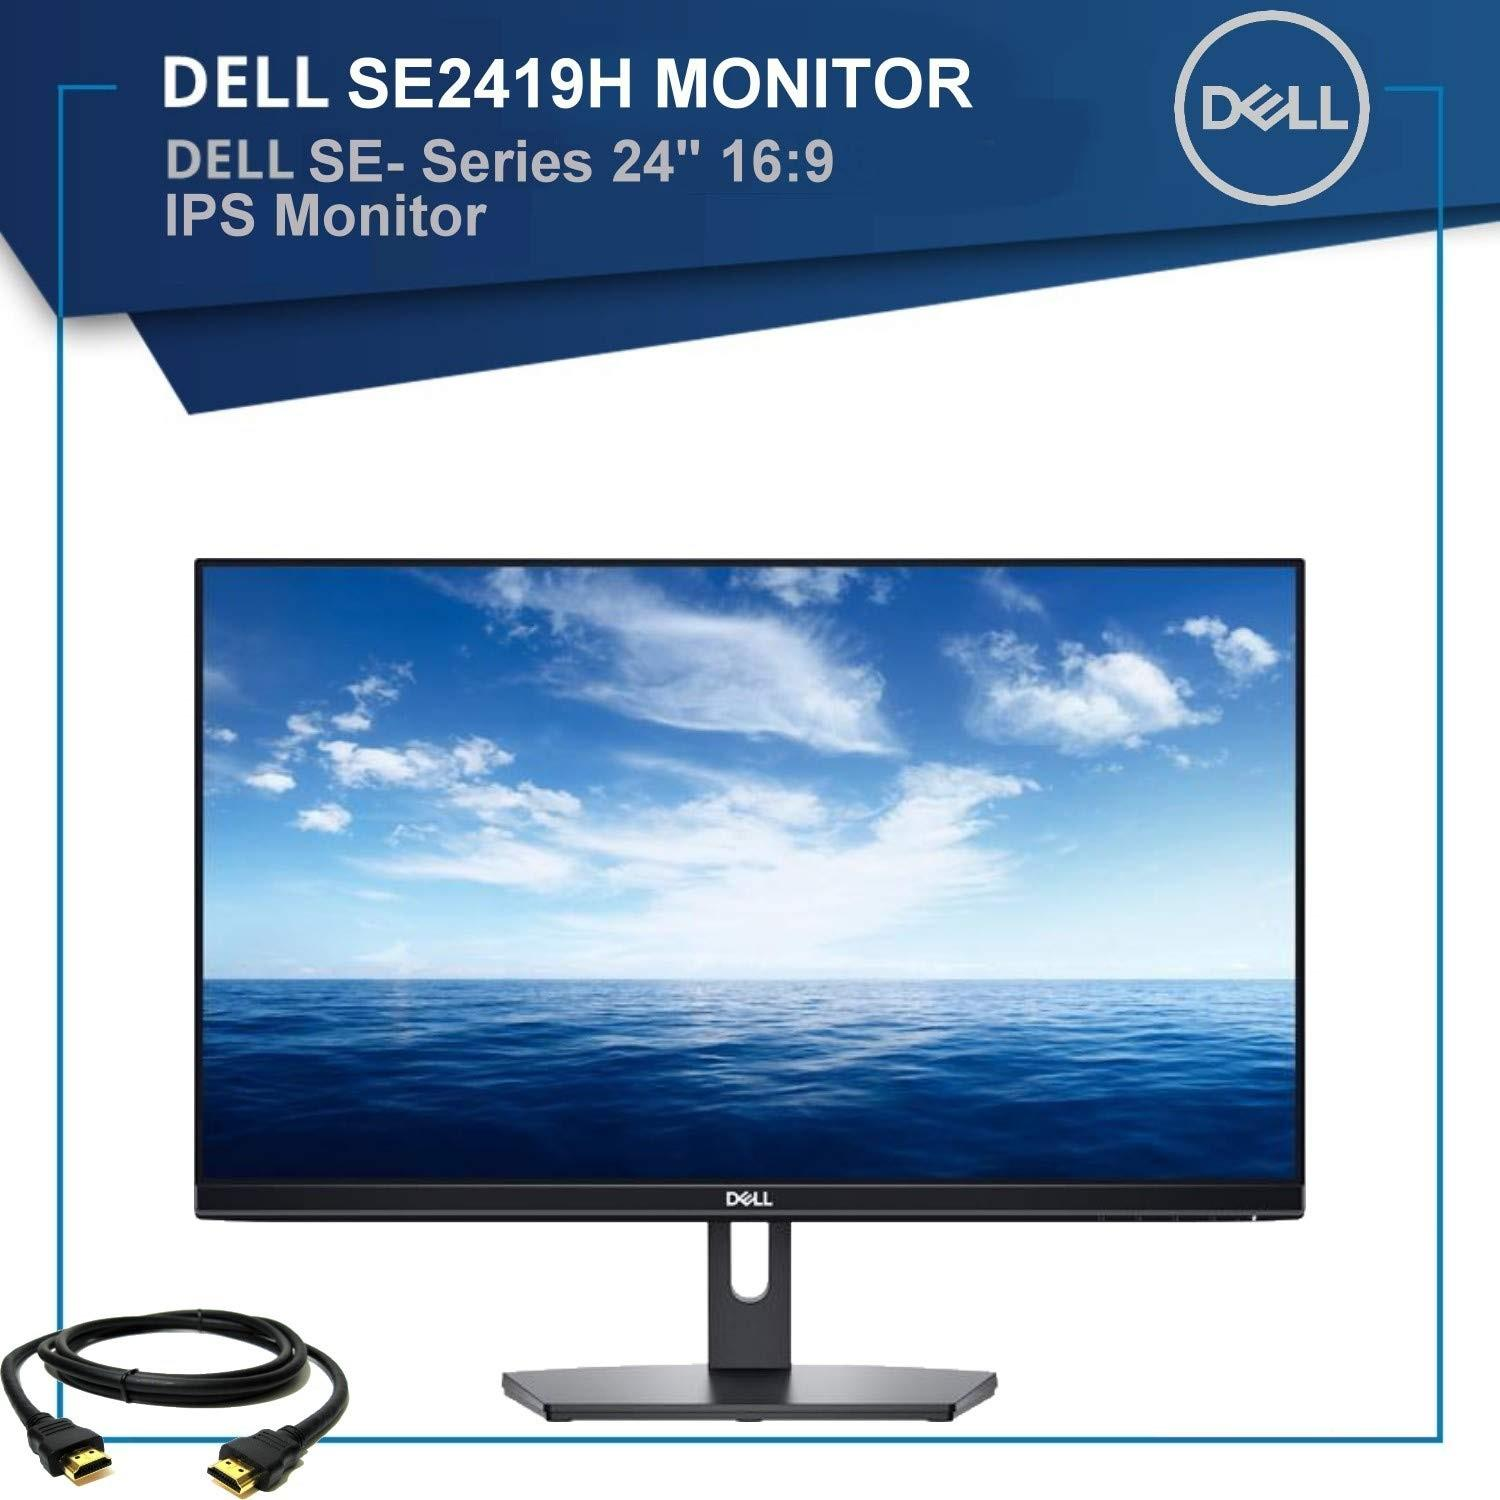 [New Arrival July 2019]New Dell sealed box model SE2419H 24 INCH FullHD 5ms  HDMI port, VGA port IPS screen monitor with 3 years dell onsite